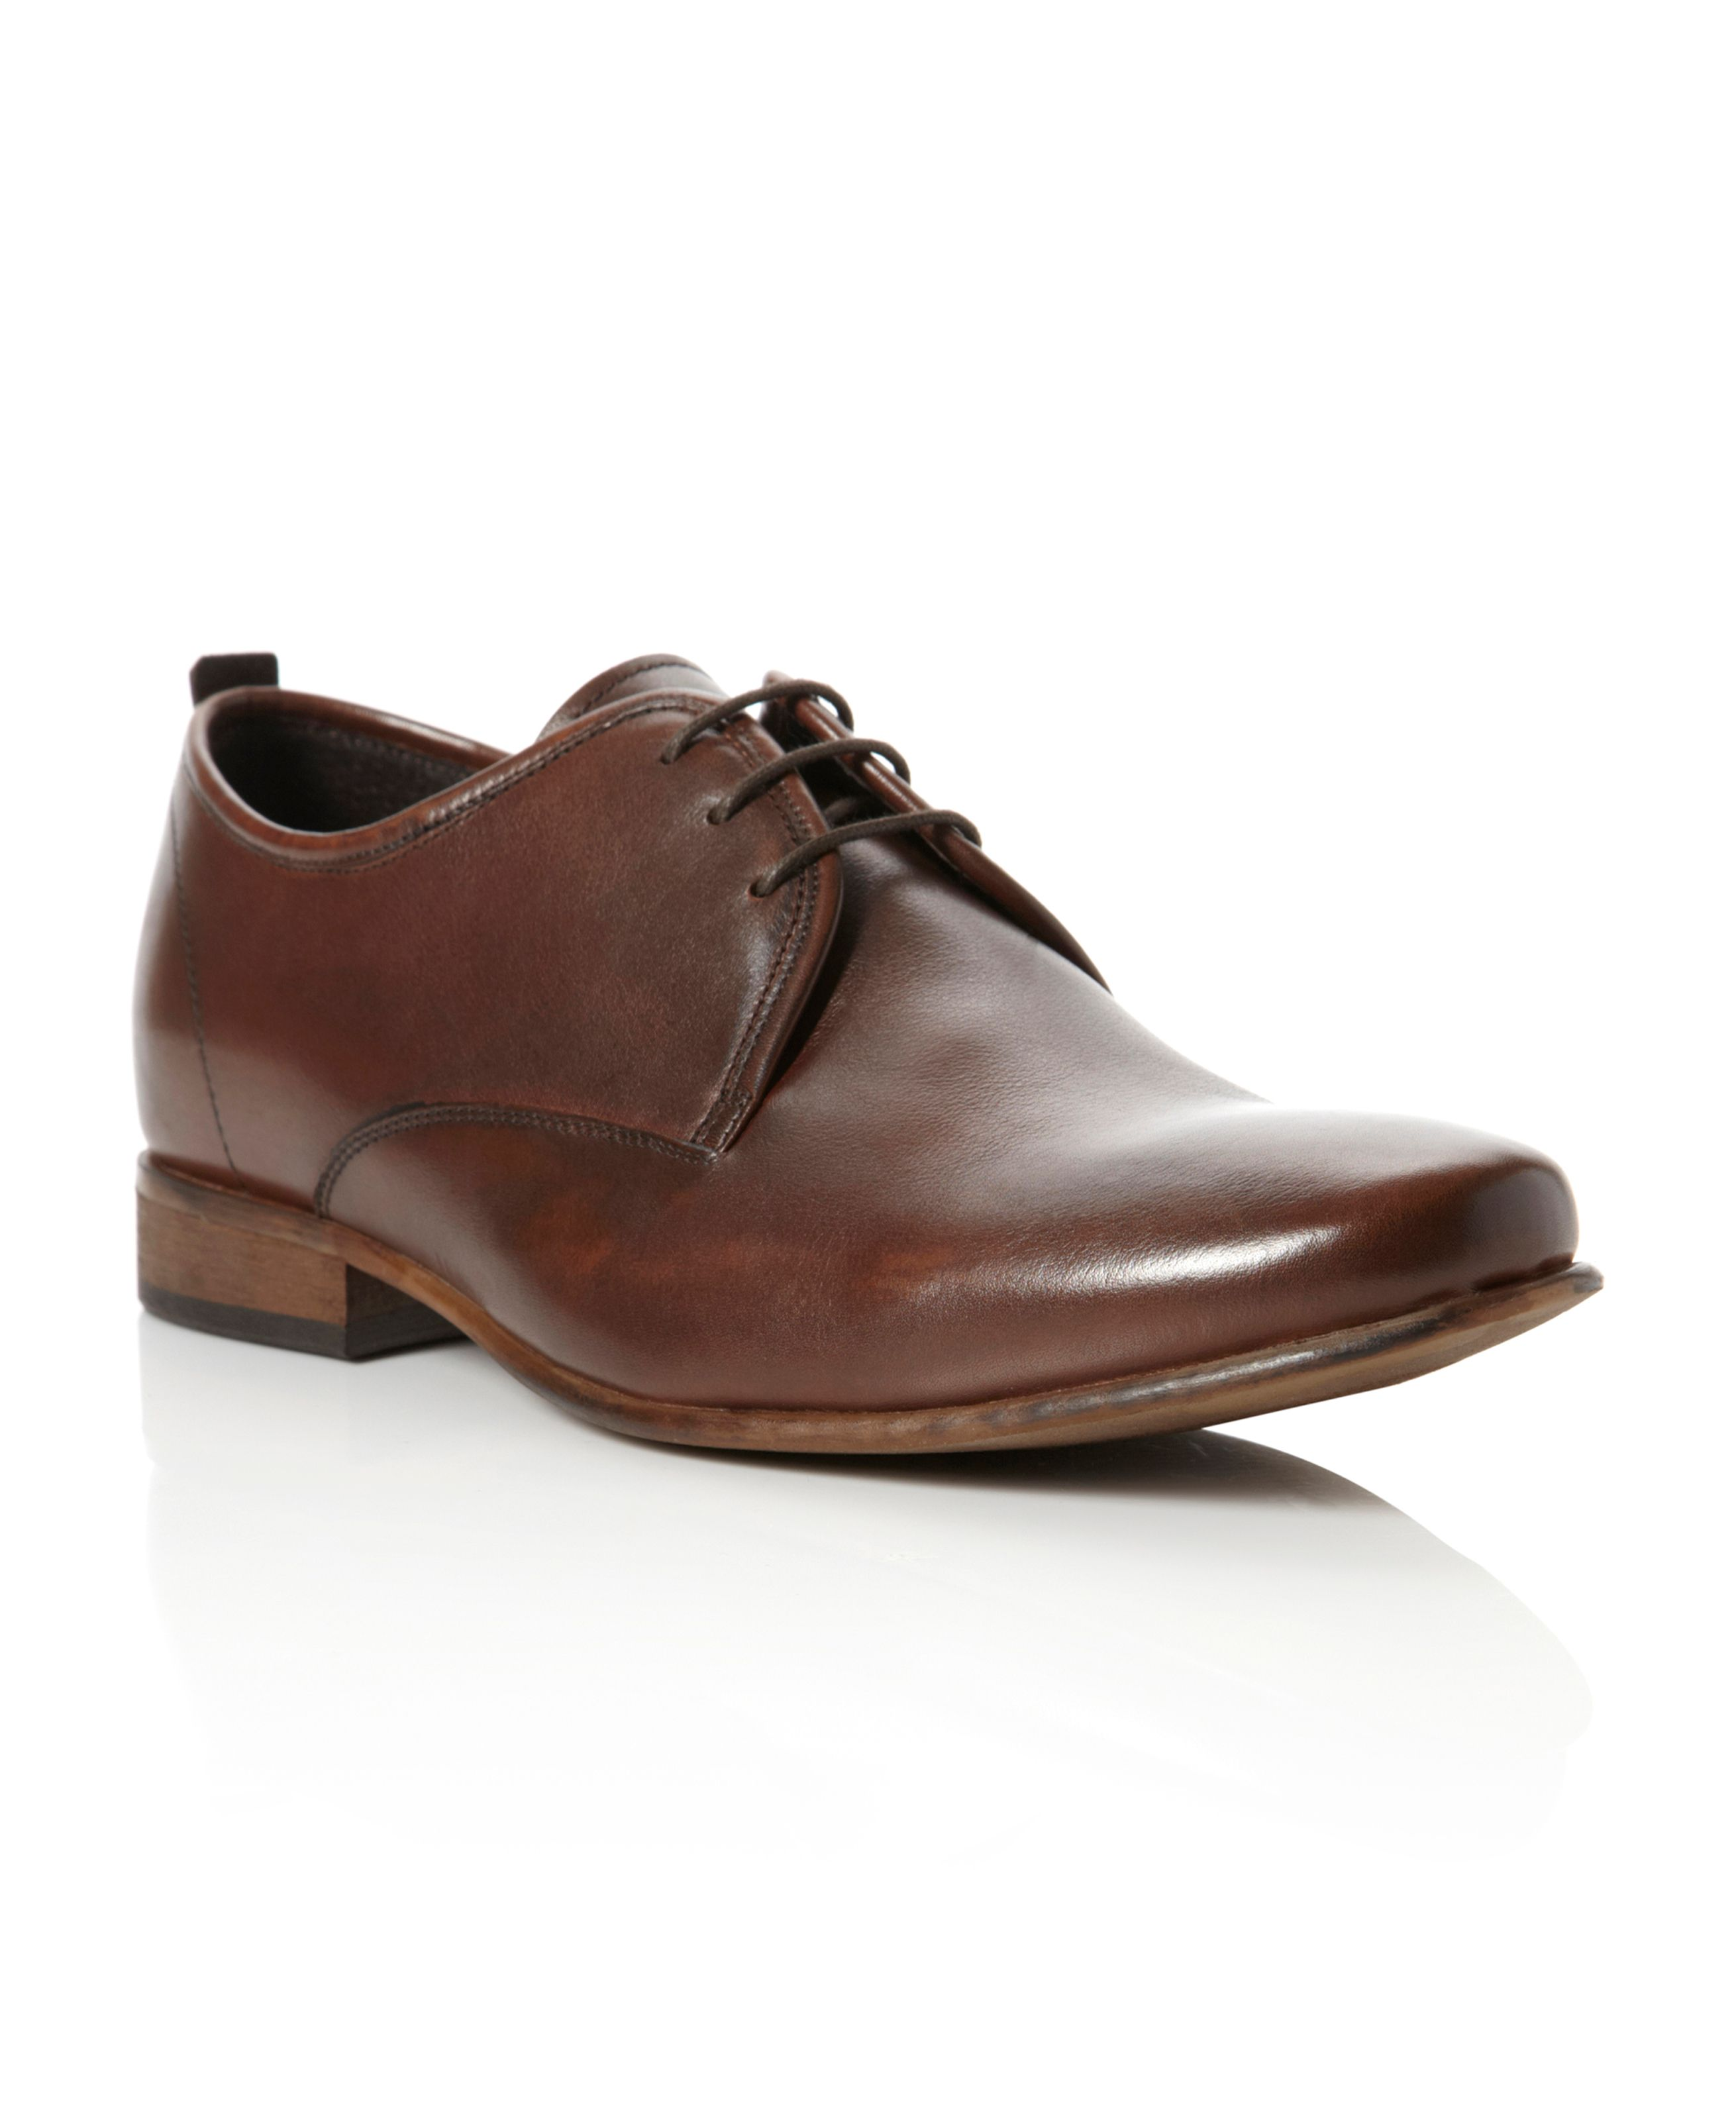 Argentina plain laced round toe shoes